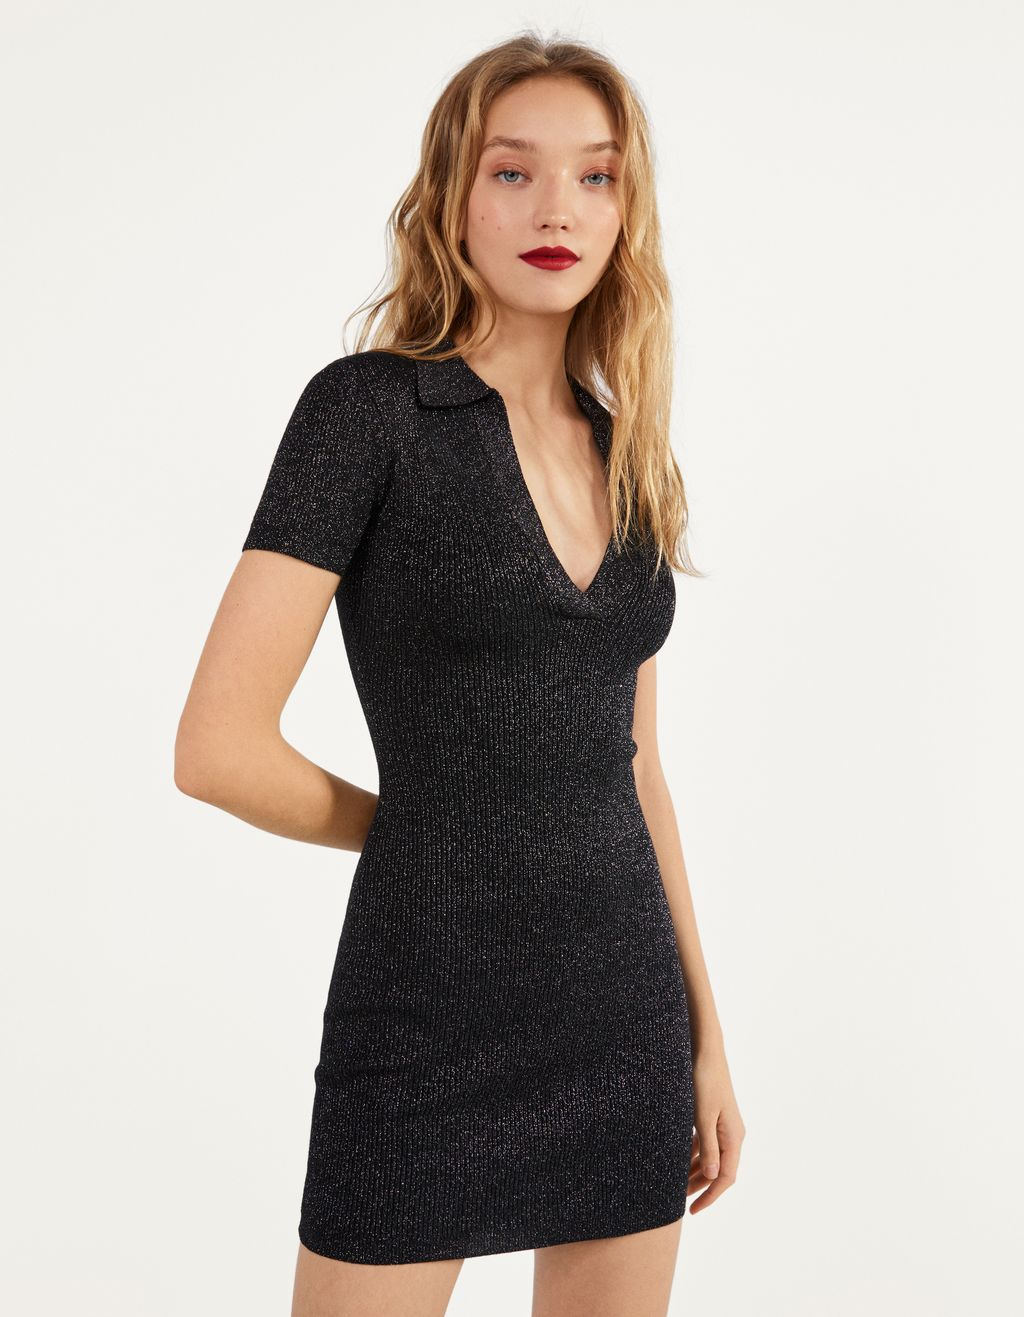 Knit dress with metallic thread